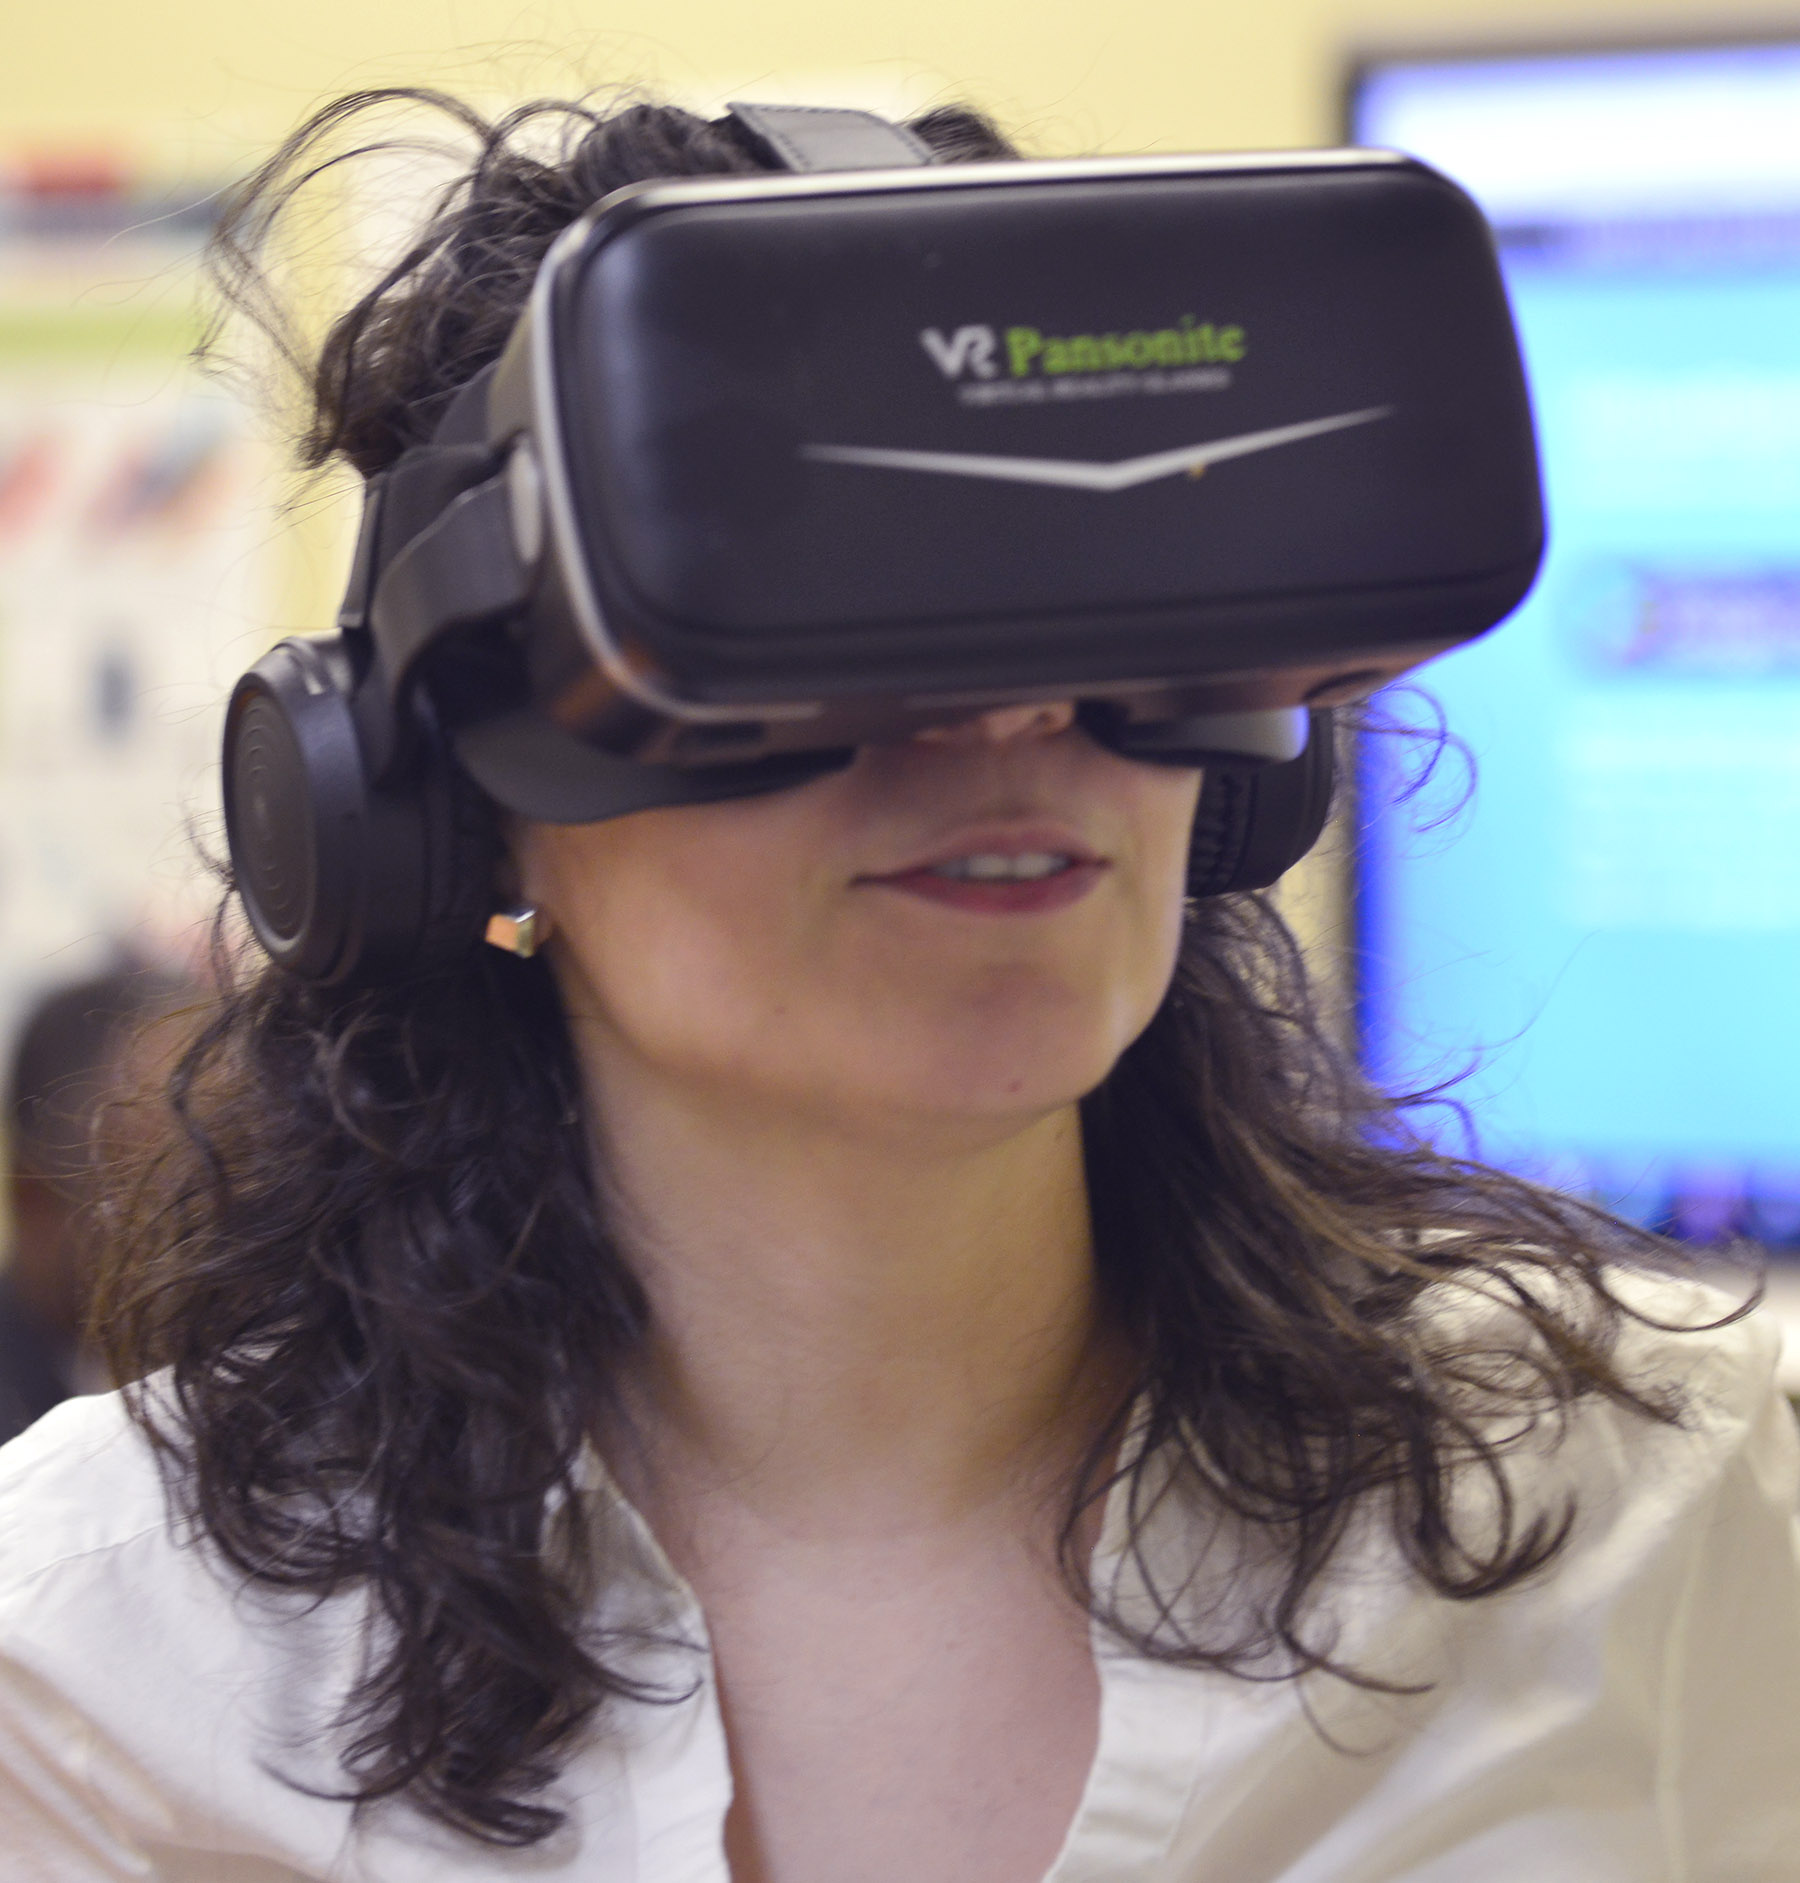 Goggles On! VR in Education